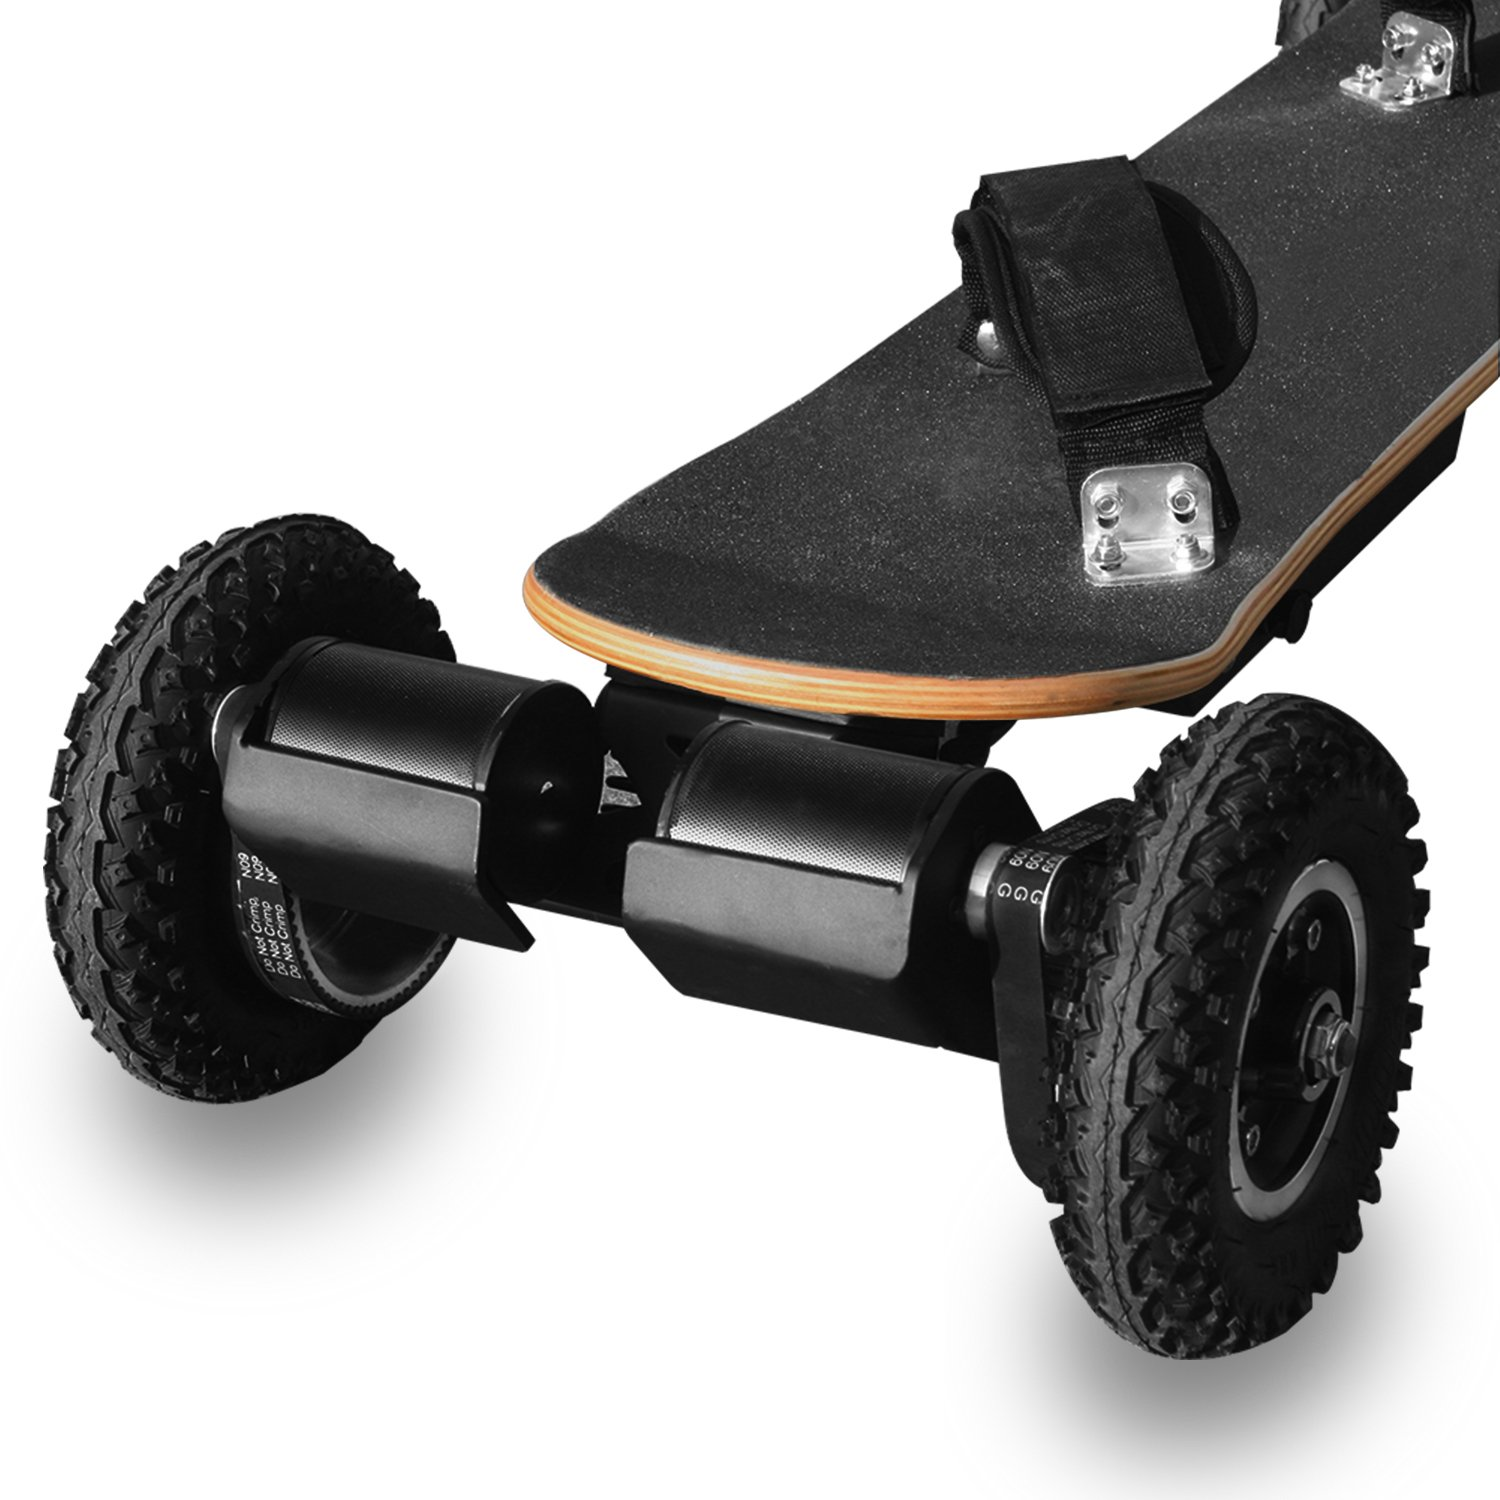 Off Road Pro Skateboard, Dubang Skateboard Support High Speed with Solid Design